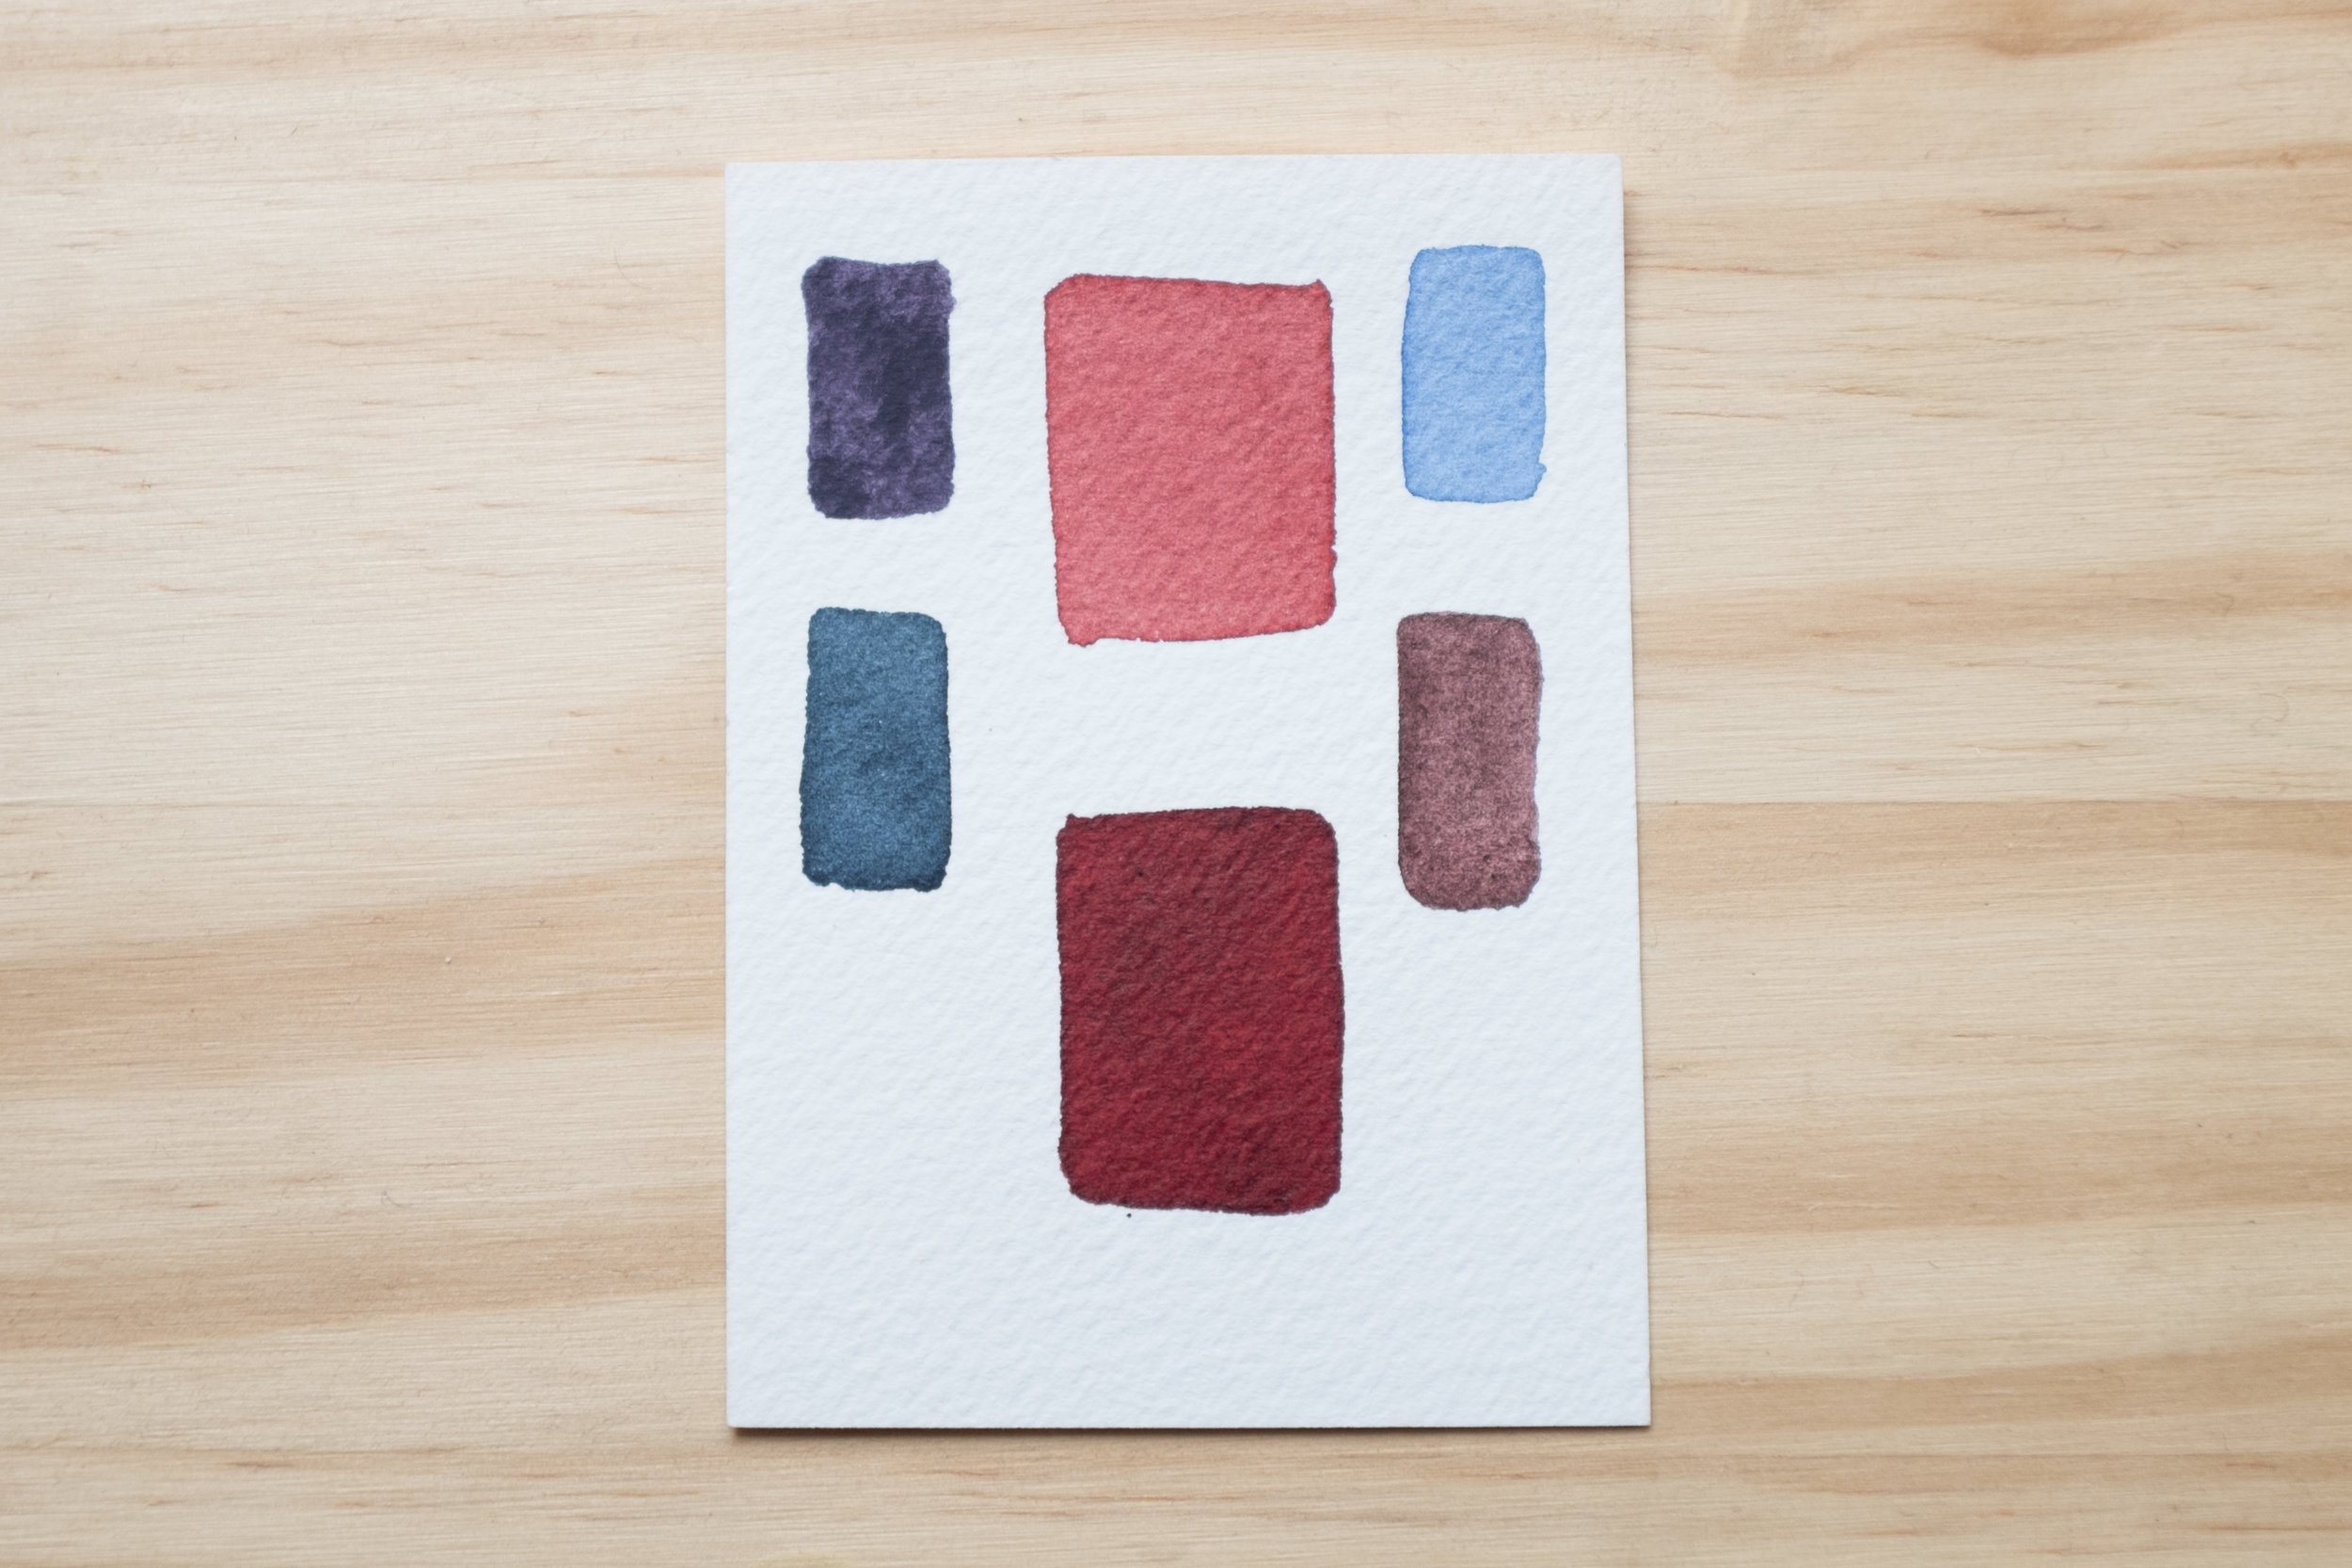 Perylene Maroon and some other colors that I feel go well with it: Daniel Smith Moonglow, Schmincke Cobalt Blue Light, Daniel Smith Piemontite Genuine, and Winsor&Newton Payne's Grey